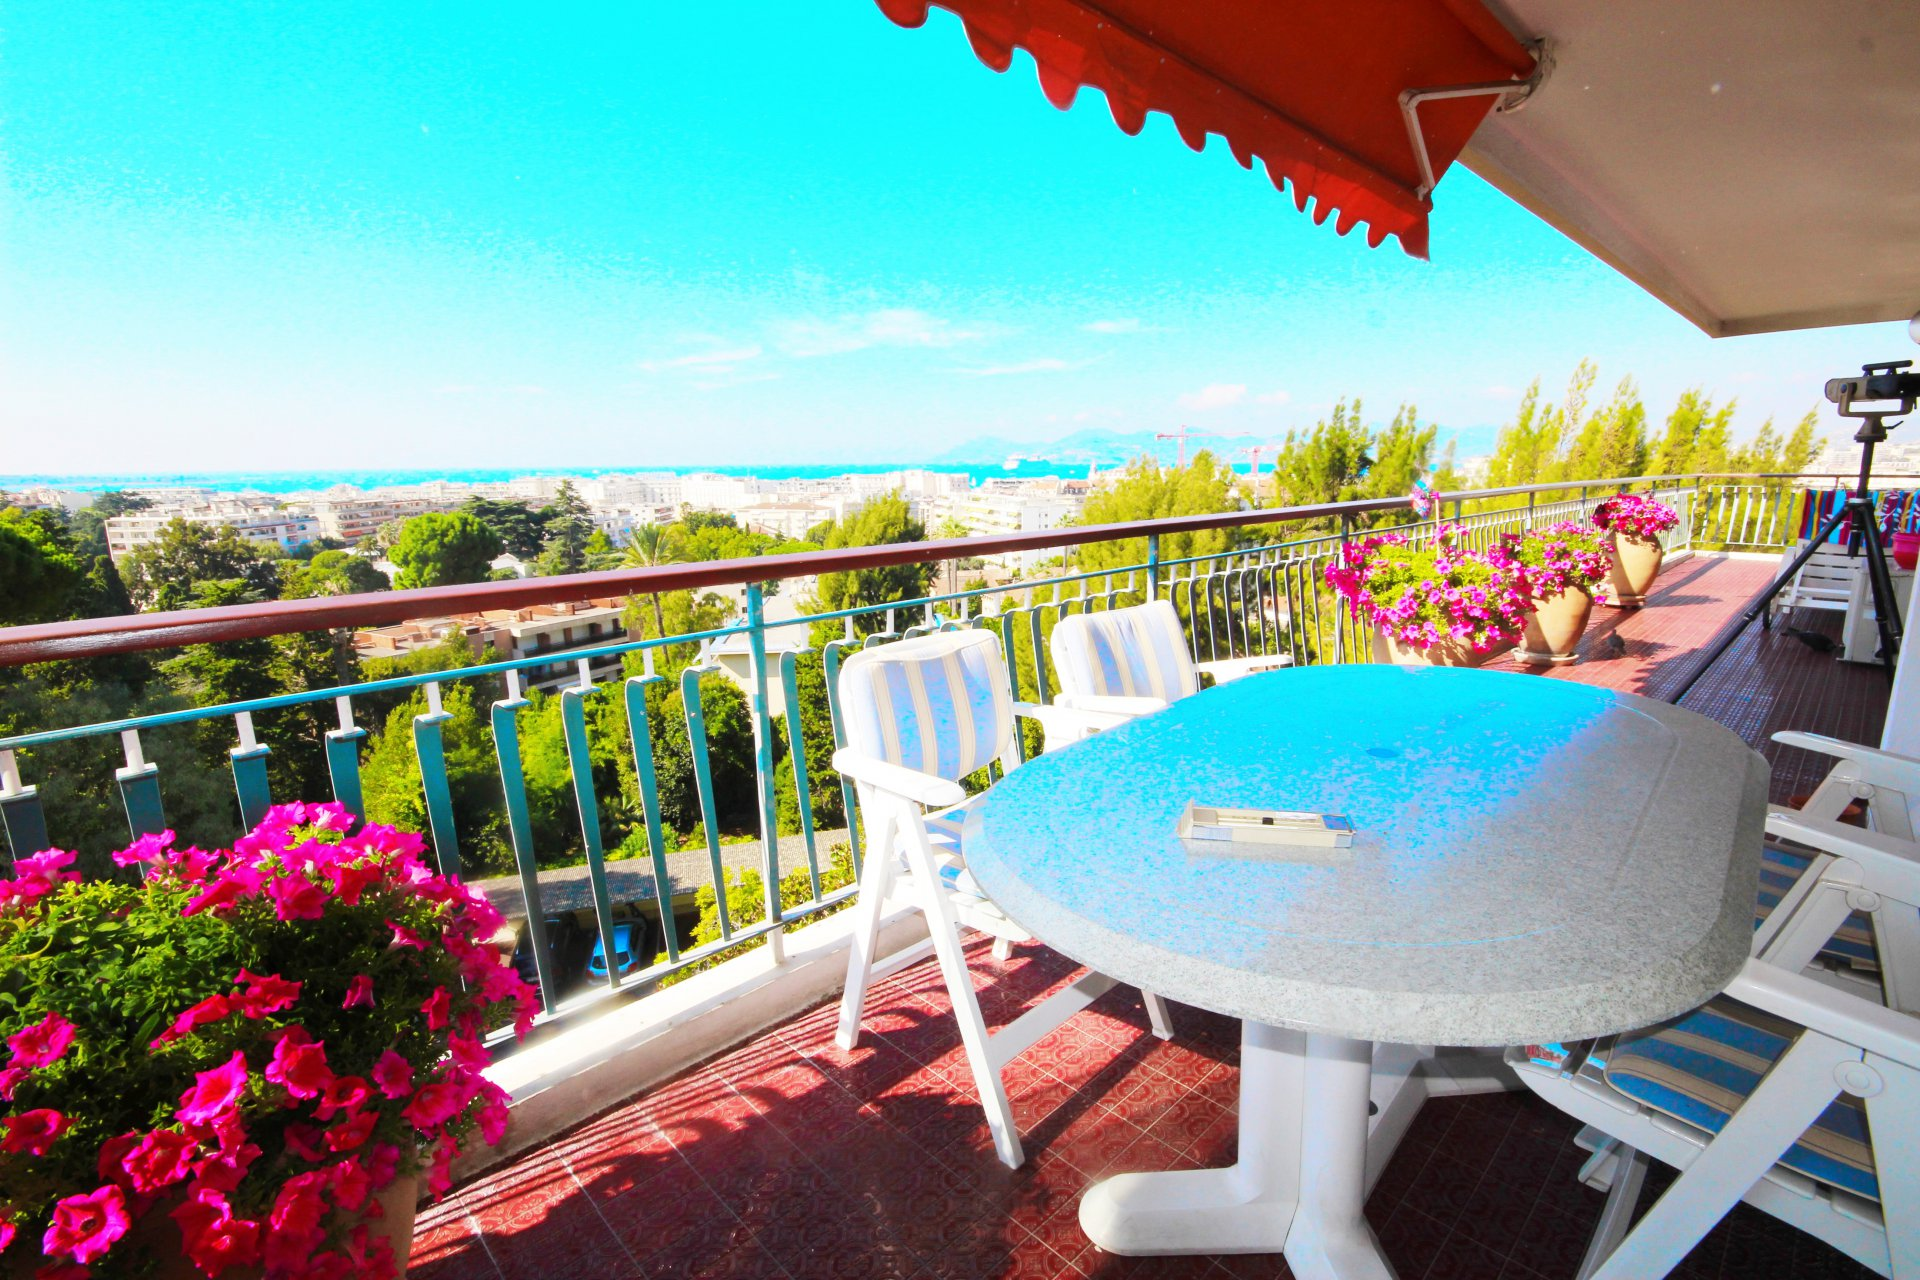 CANNES SALE 4 ROOMS HIGH FLOOR IN CALM ABSOLUTE PANORAMIC SEA VIEW